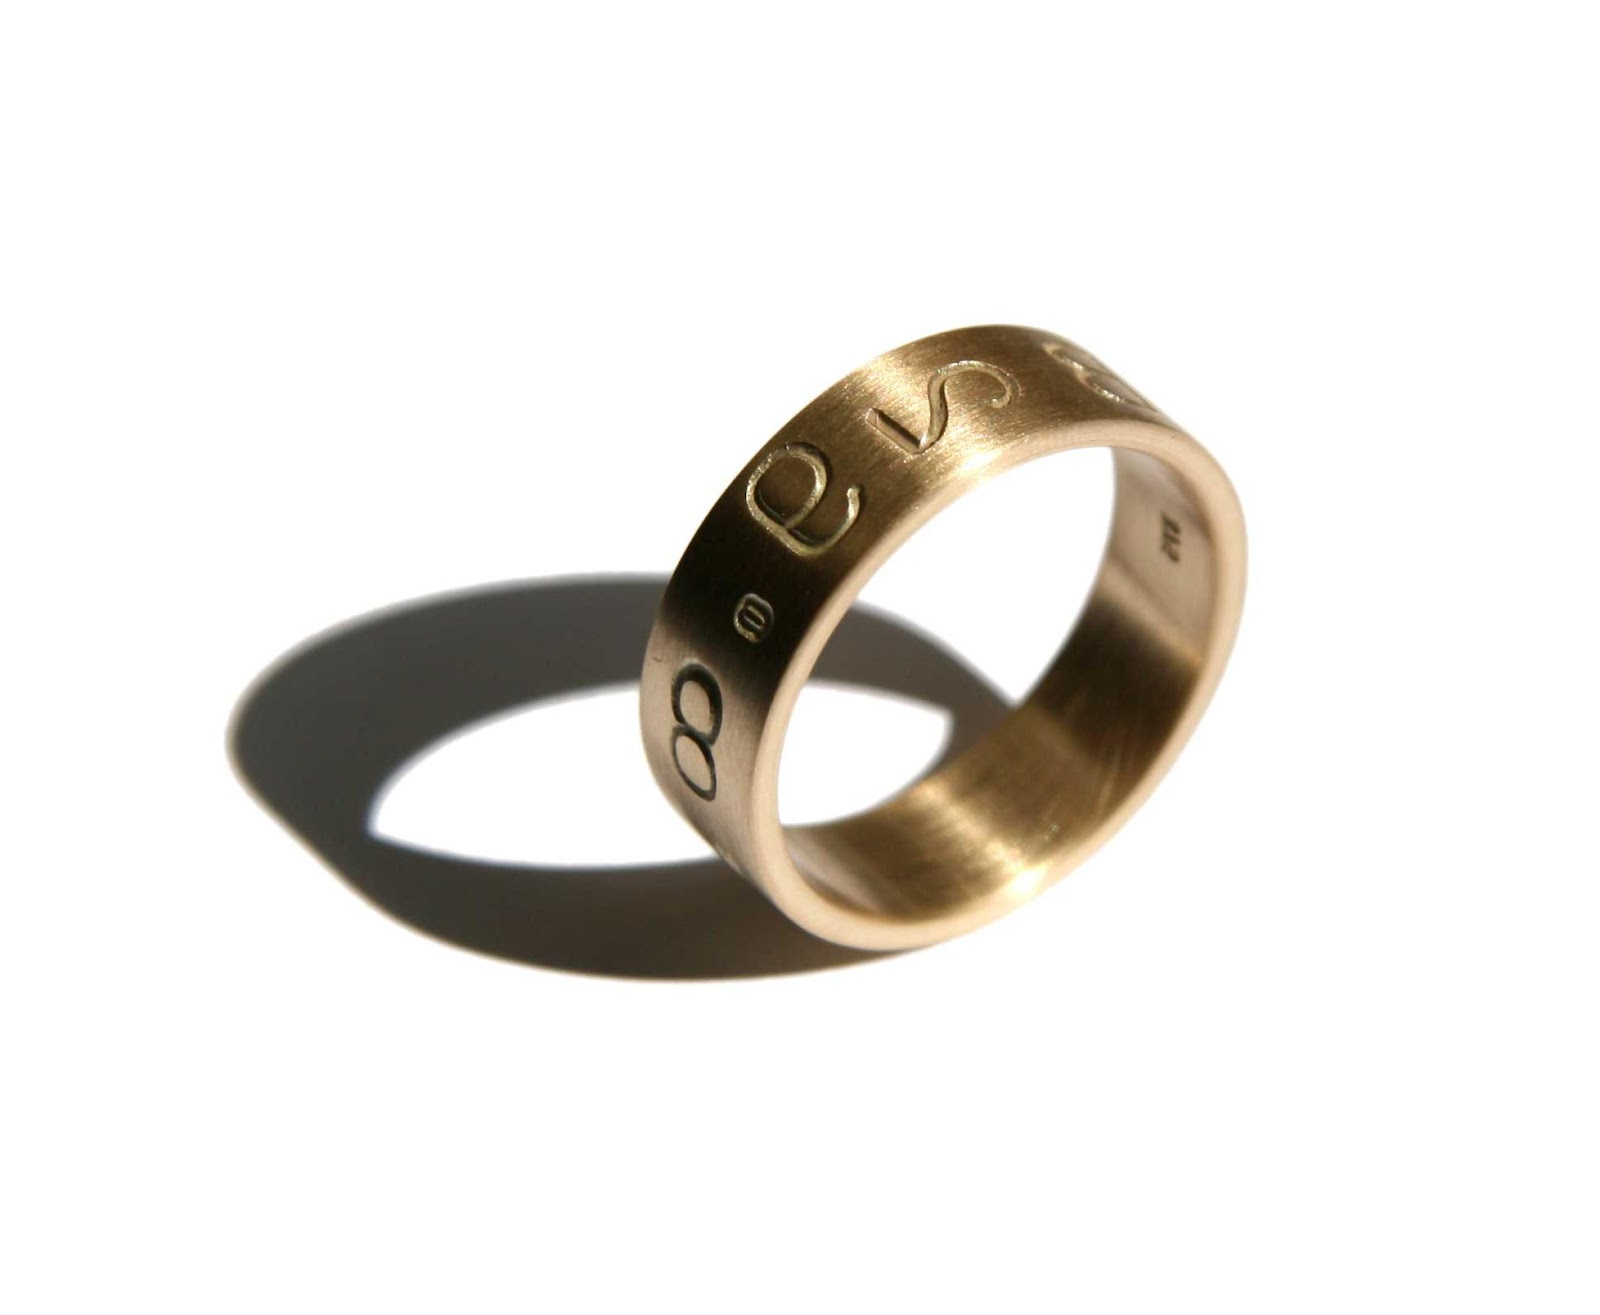 mens wedding band on hands